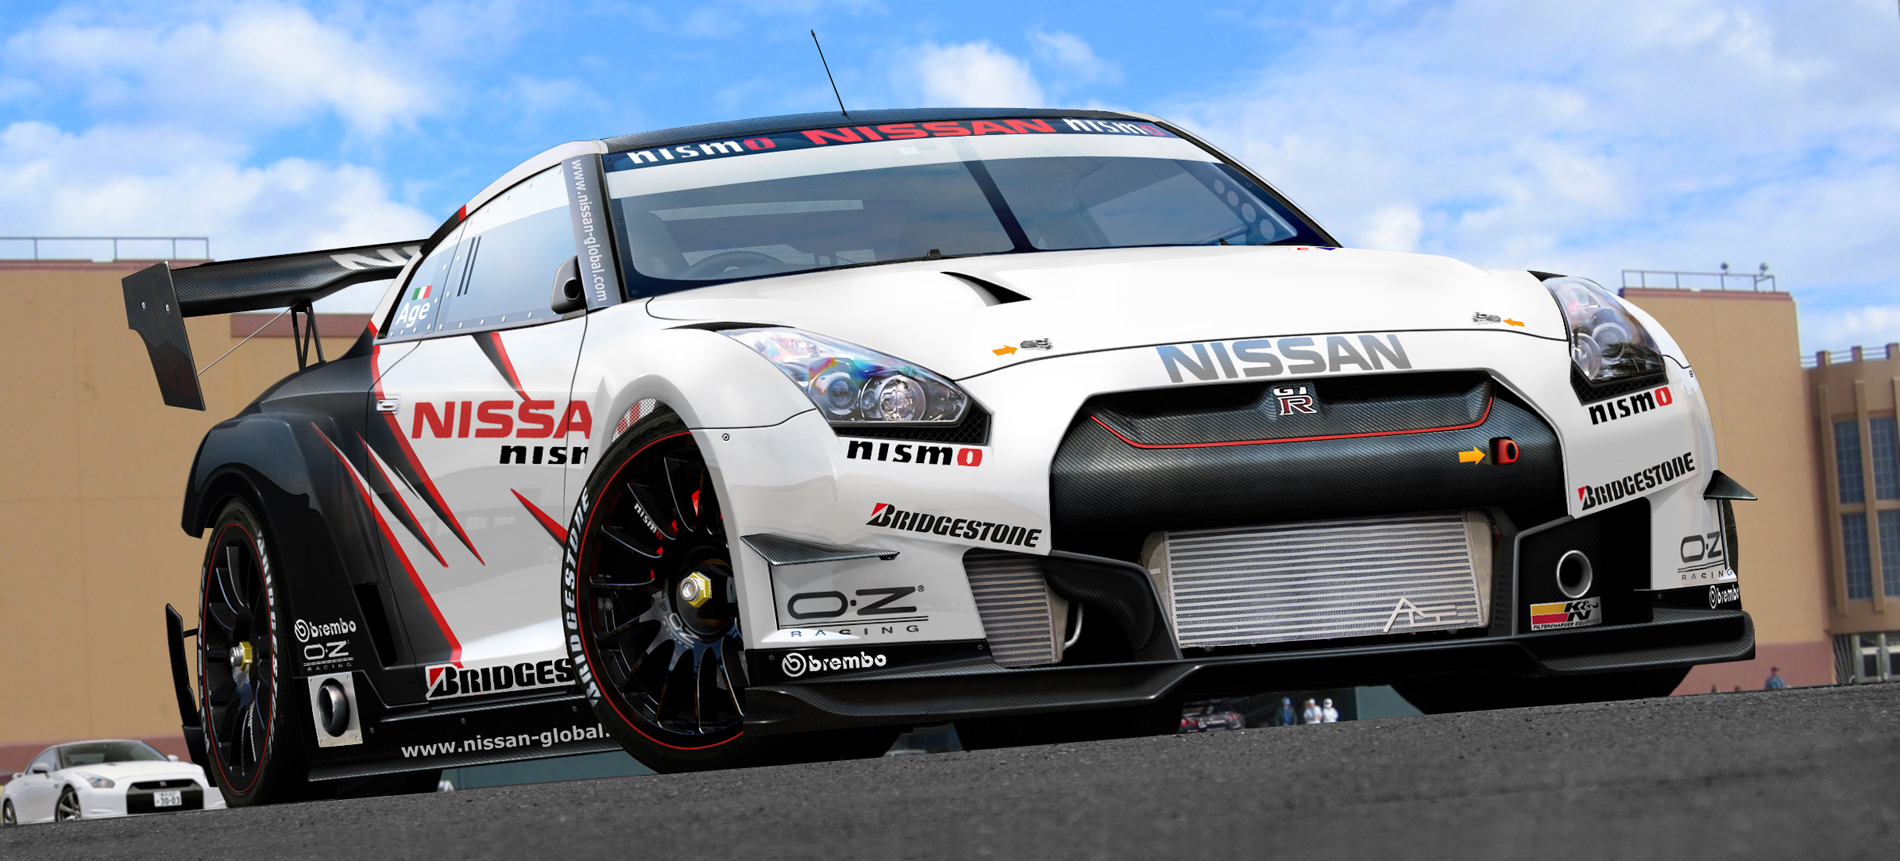 NISSAN GT-RR step II by agespoom